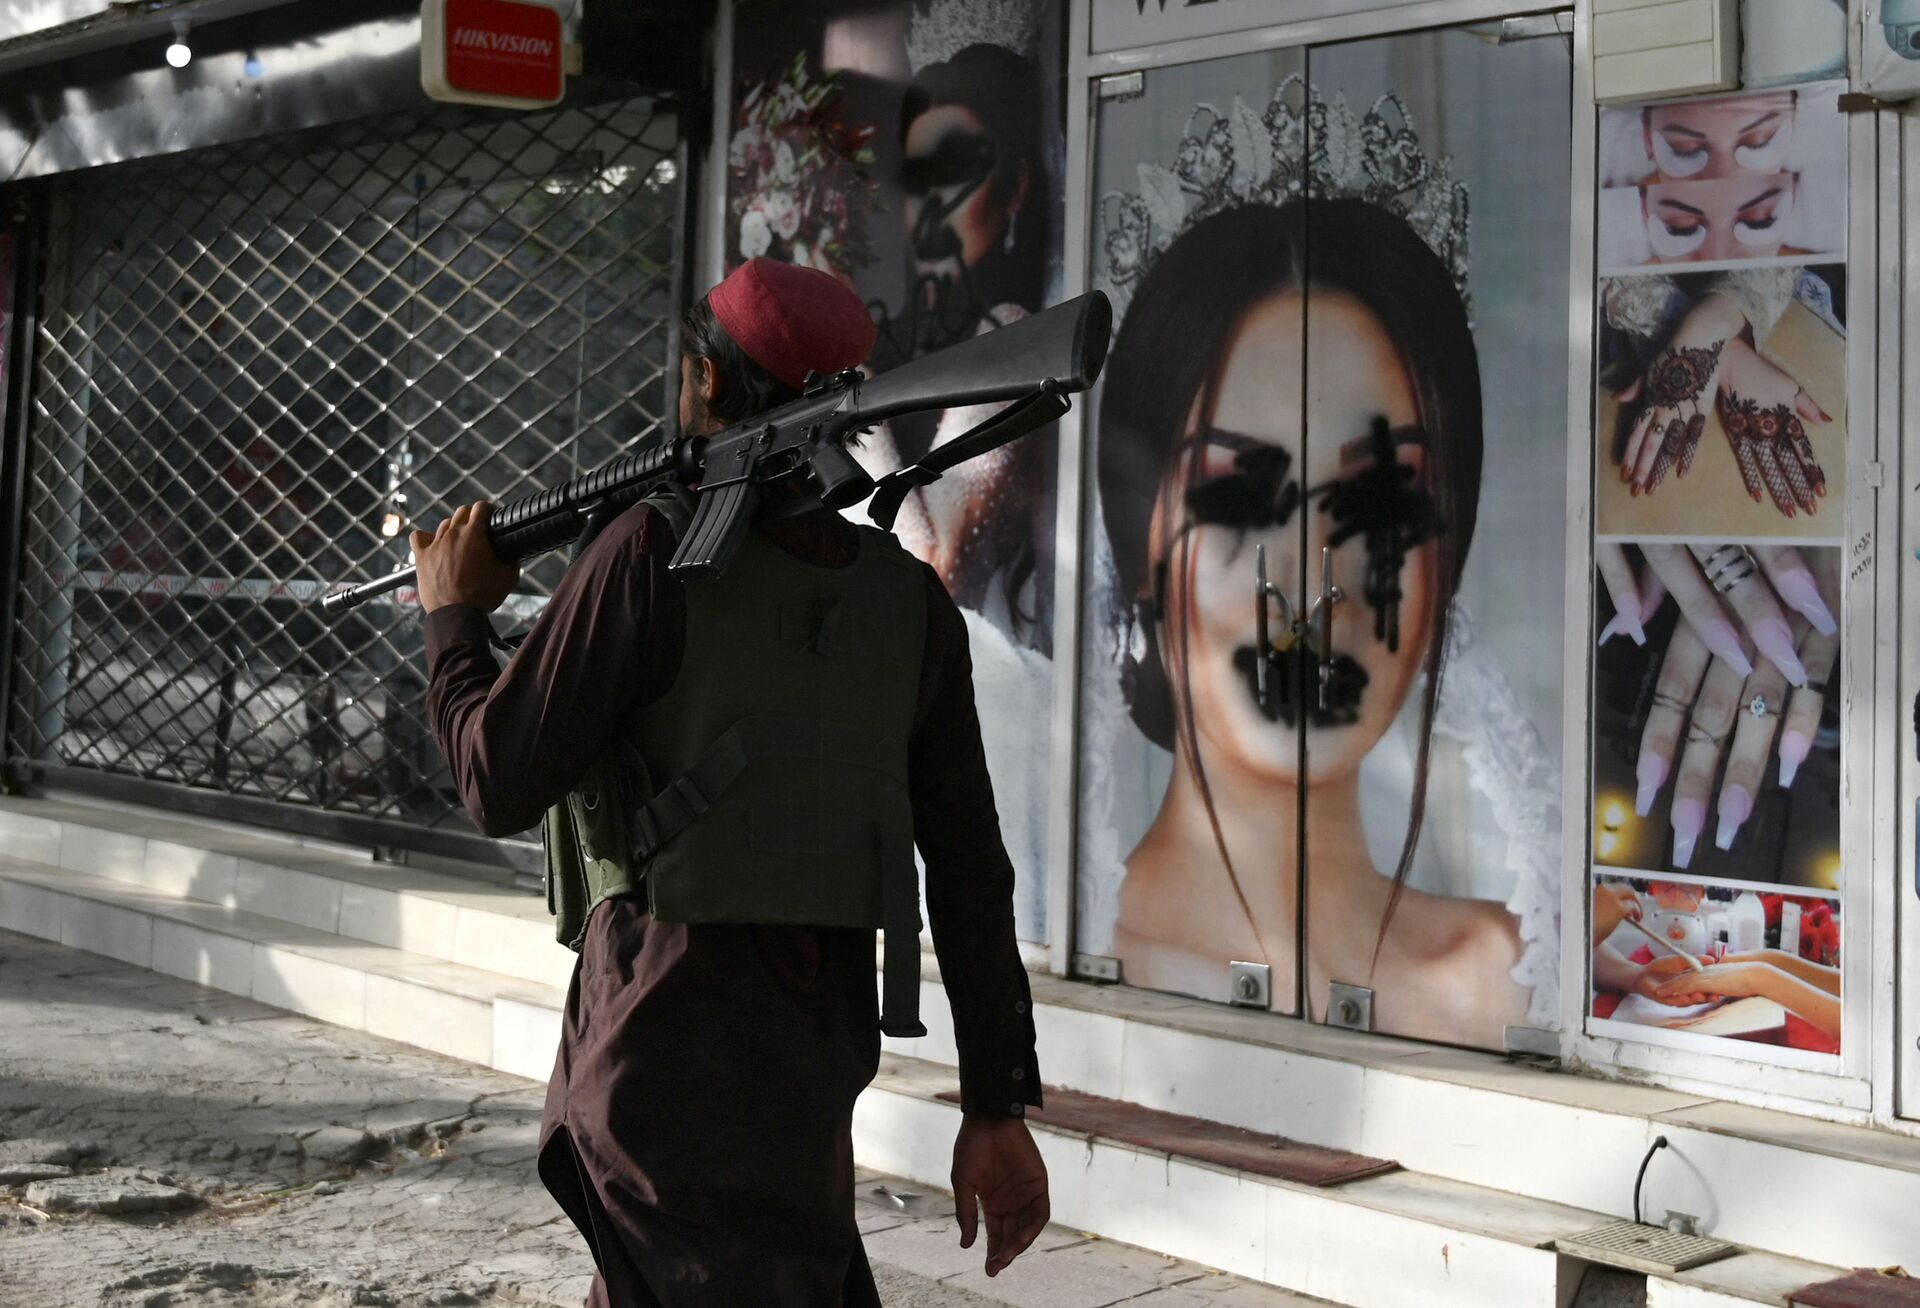 (FILES) In this file photo taken on August 18, 2021, a Taliban fighter walks past a beauty salon with images of women defaced using spray paint in Shar-e-Naw in Kabul - Sputnik International, 1920, 07.09.2021